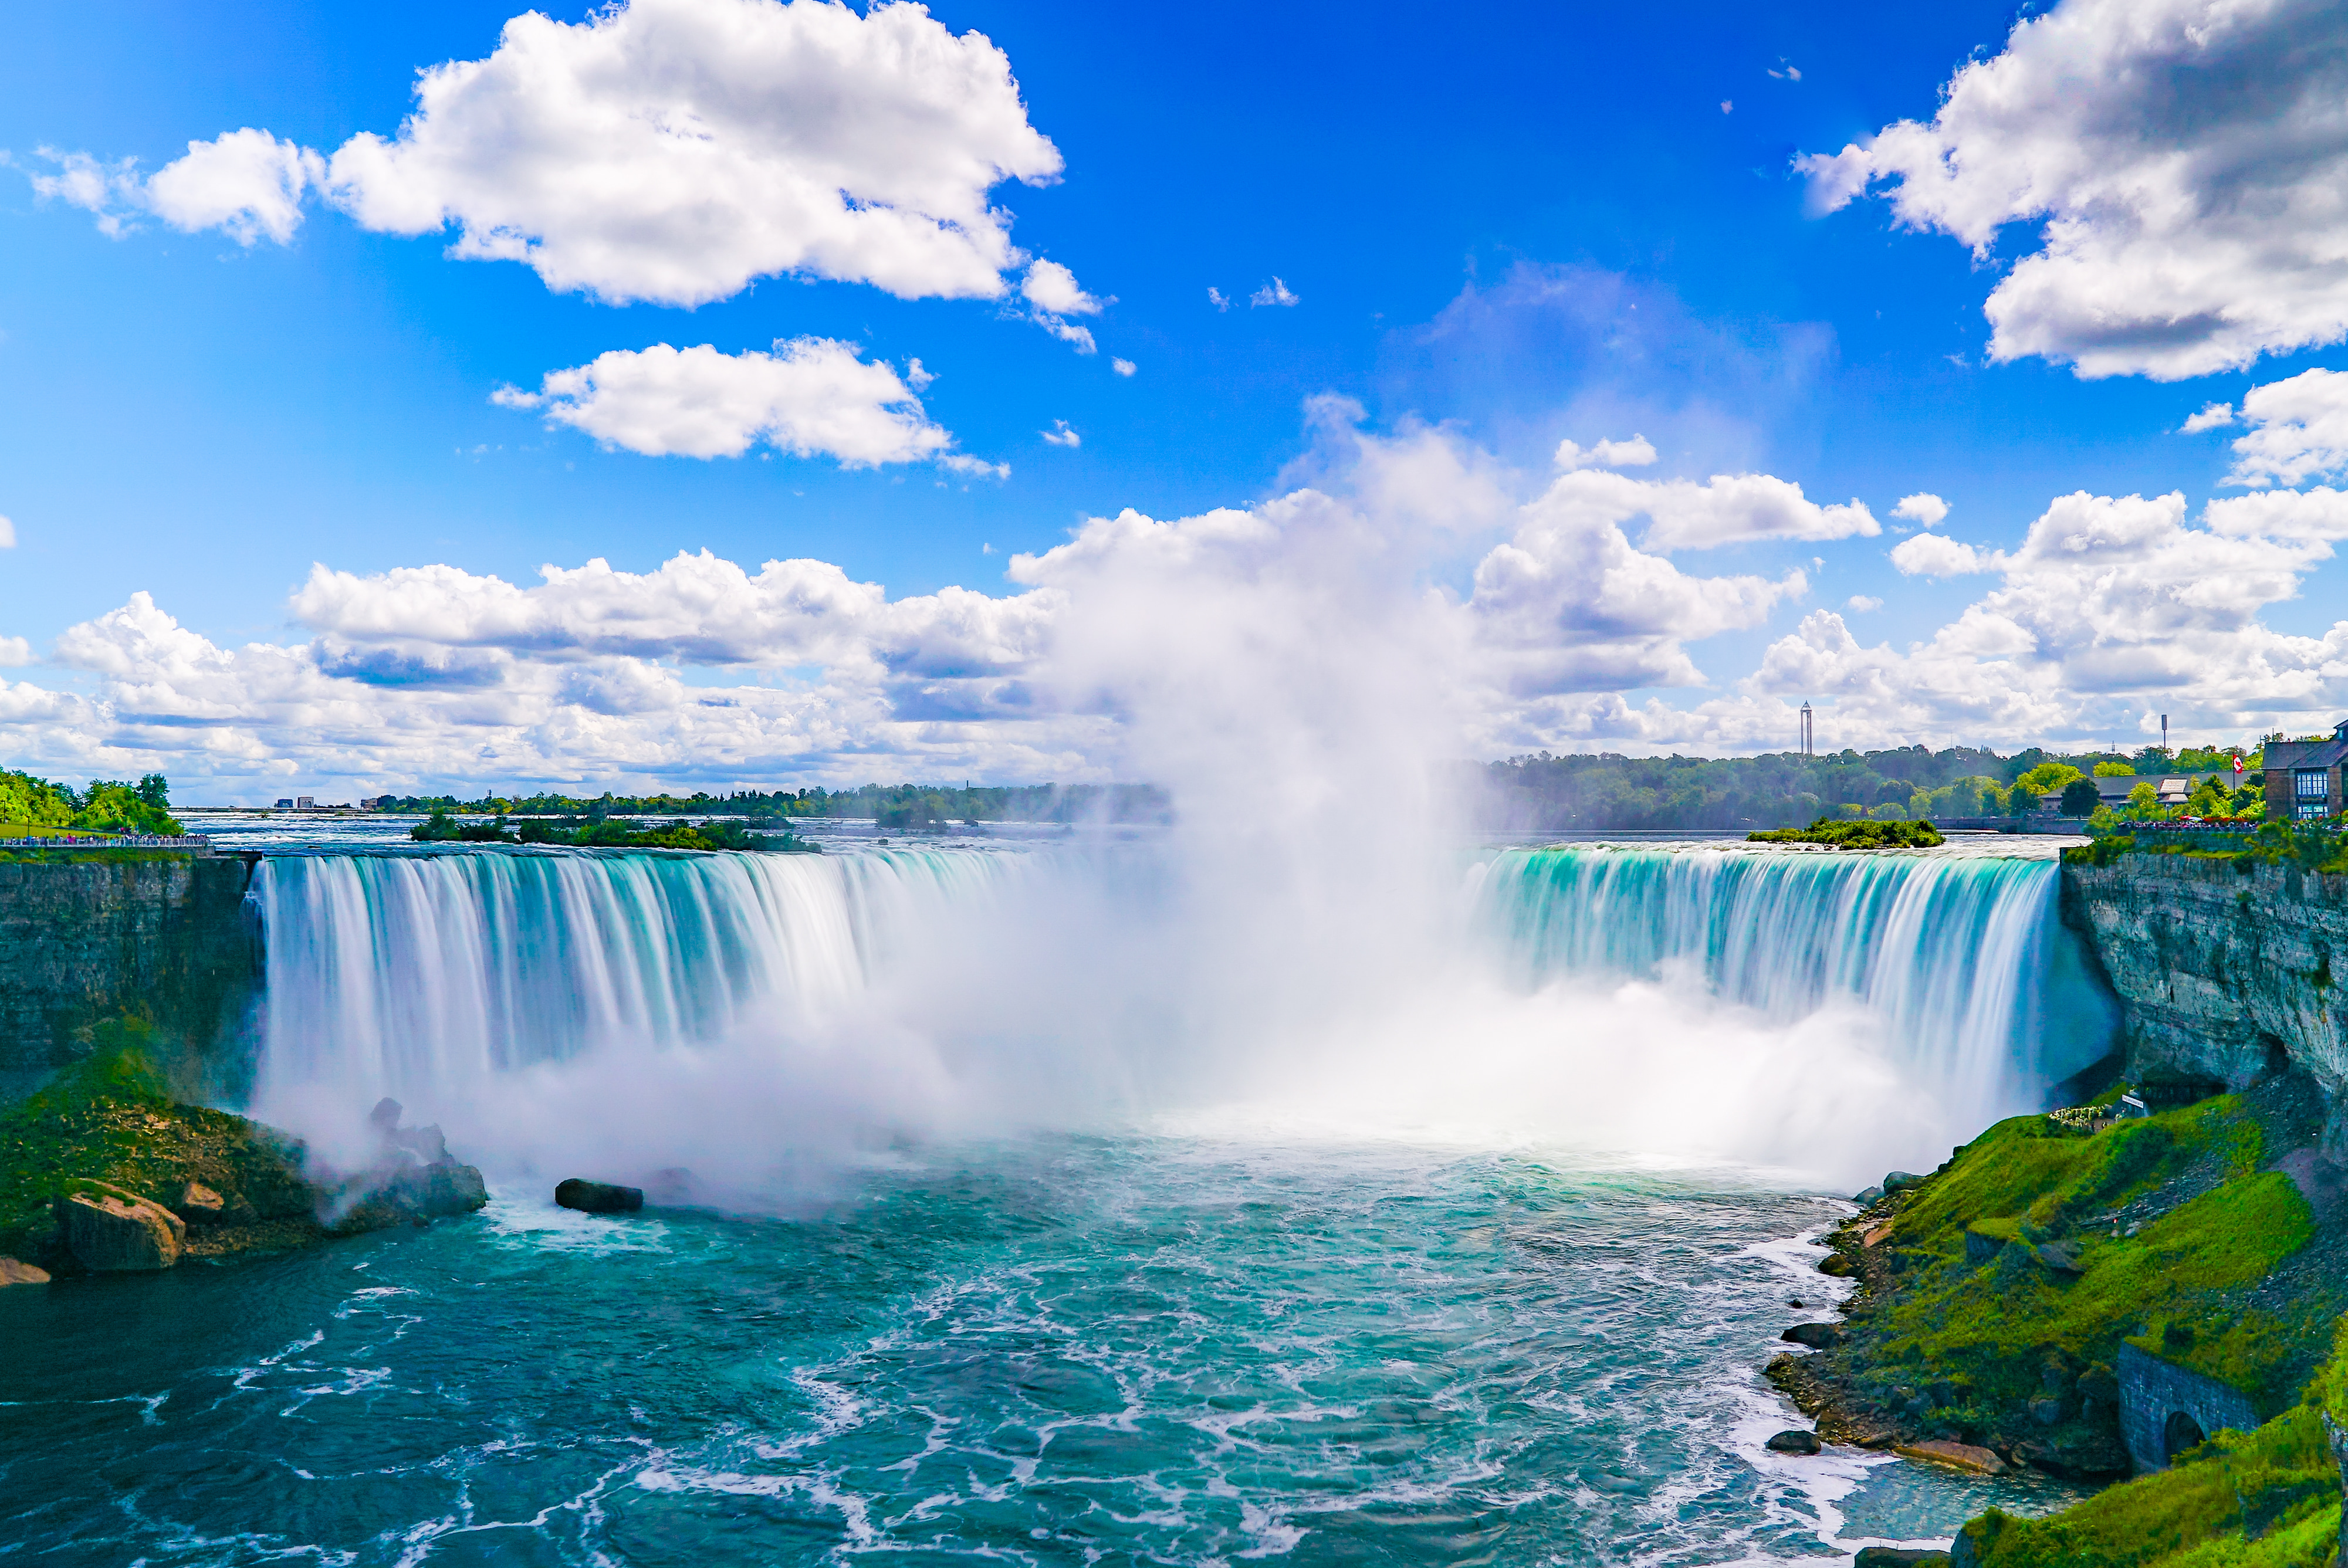 3-Day Washington D.C., Niagara Falls Tour from New York